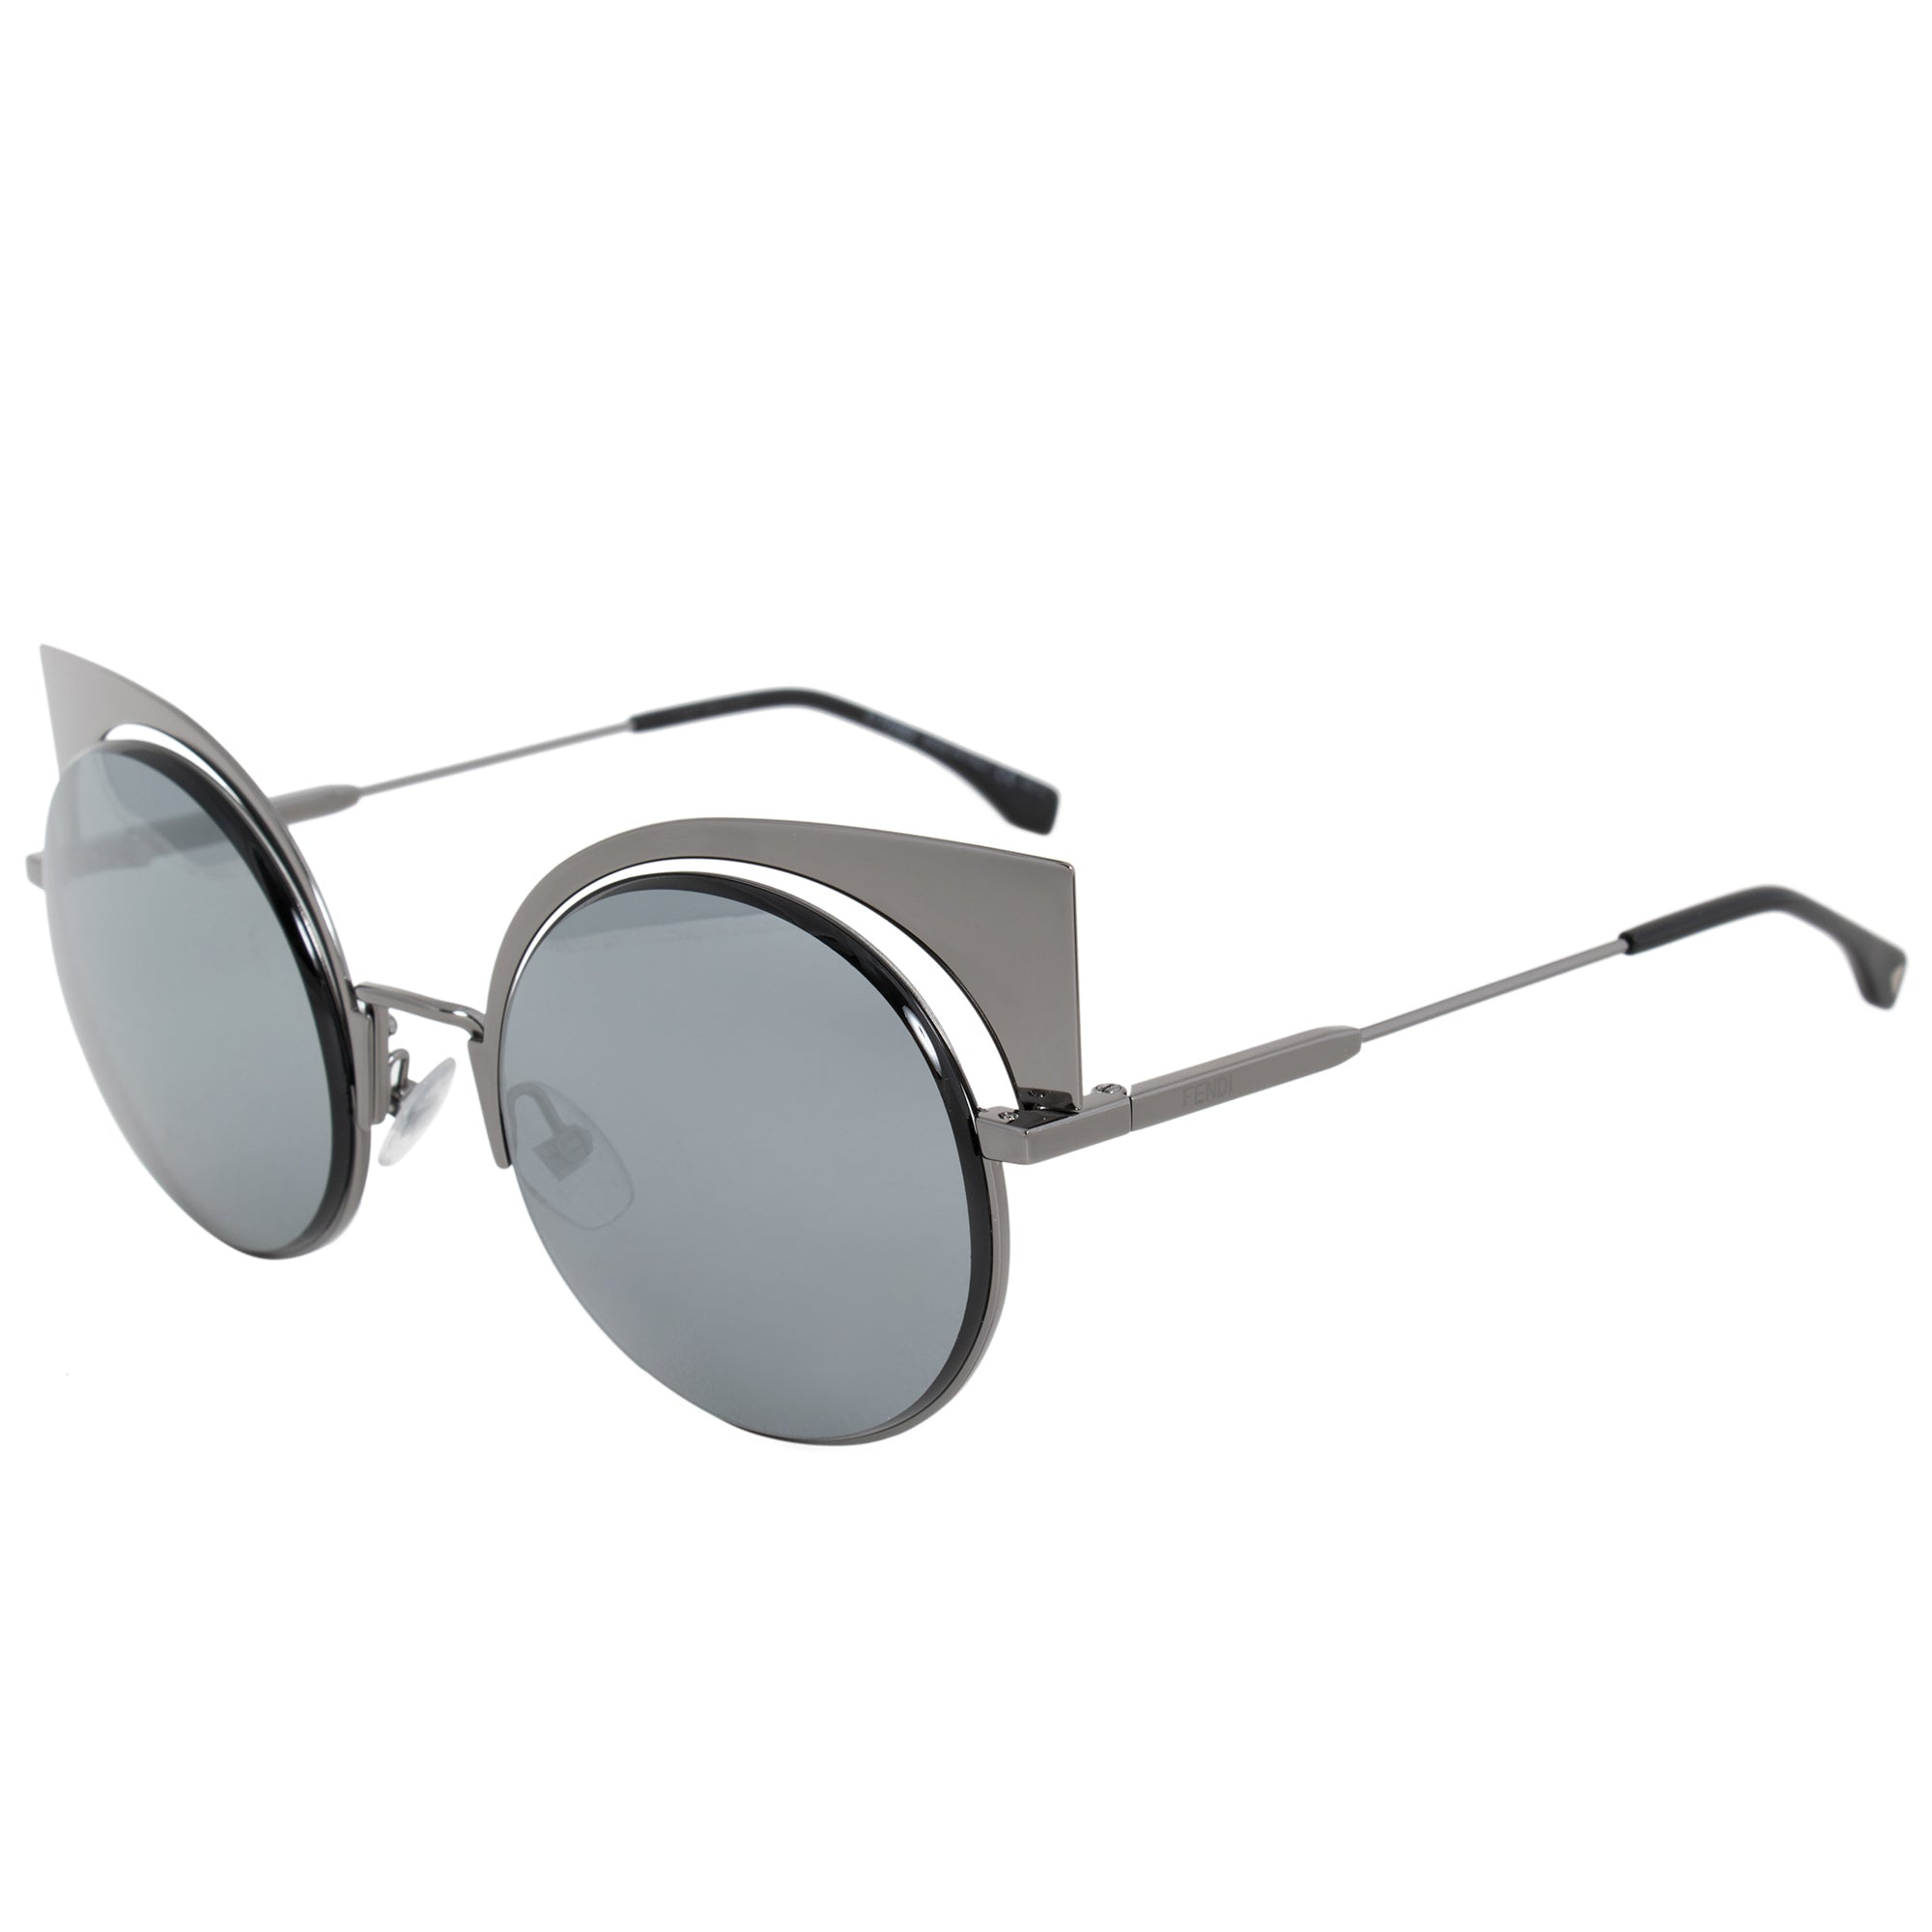 Fendi Eyeshine Cat Eye Sunglasses FF0177S KJ1 T4 53